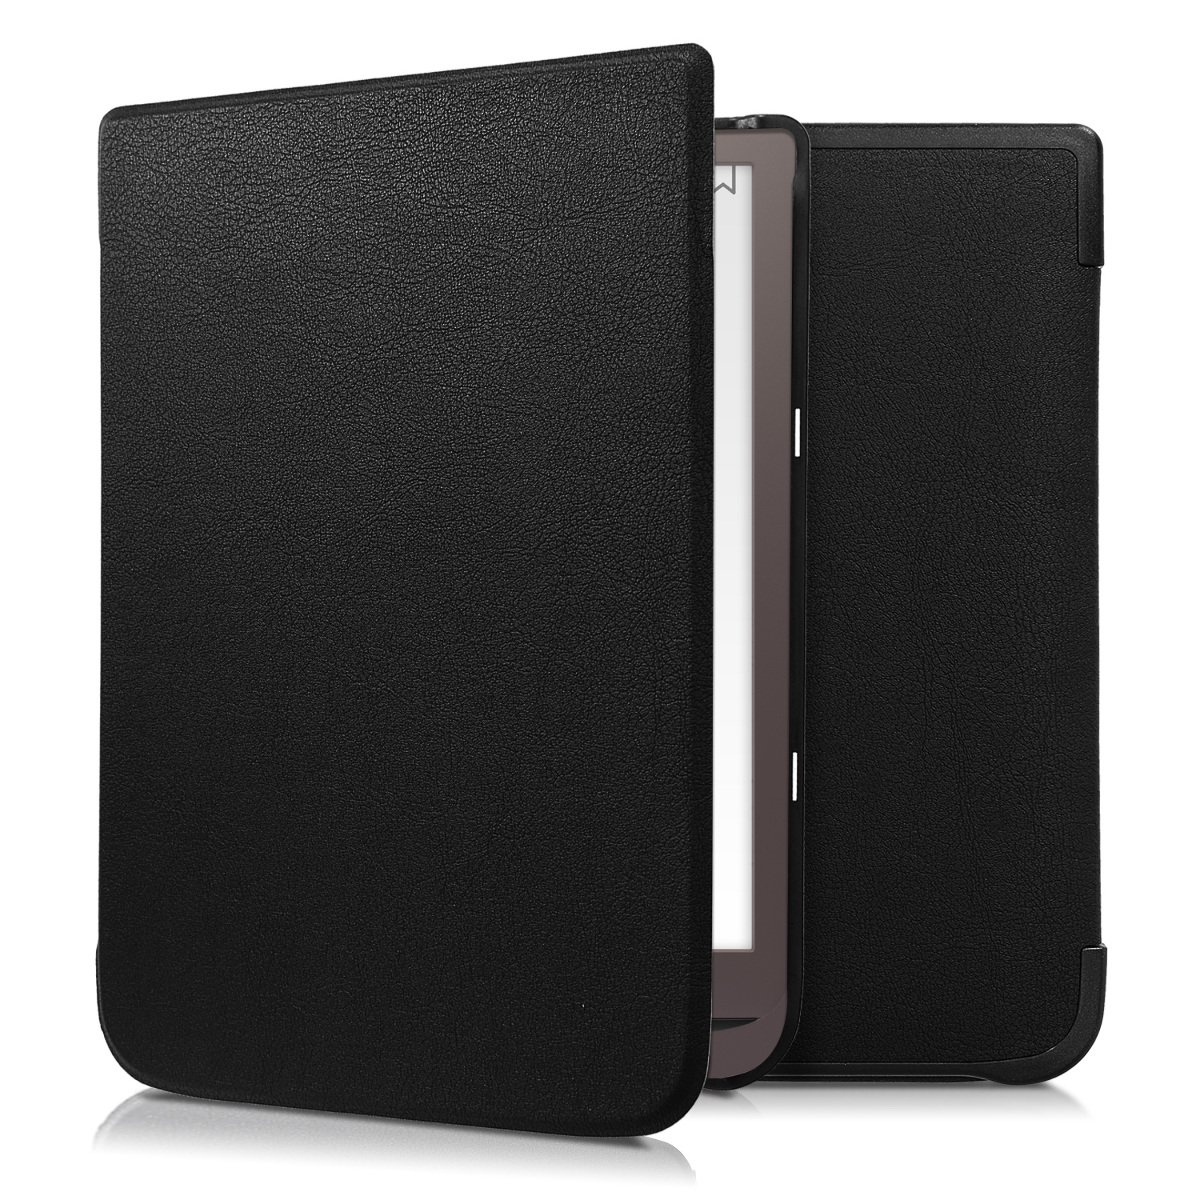 kwmobile Flip cover case for Pocketbook InkPad 3 - imitation leather foldable case in black